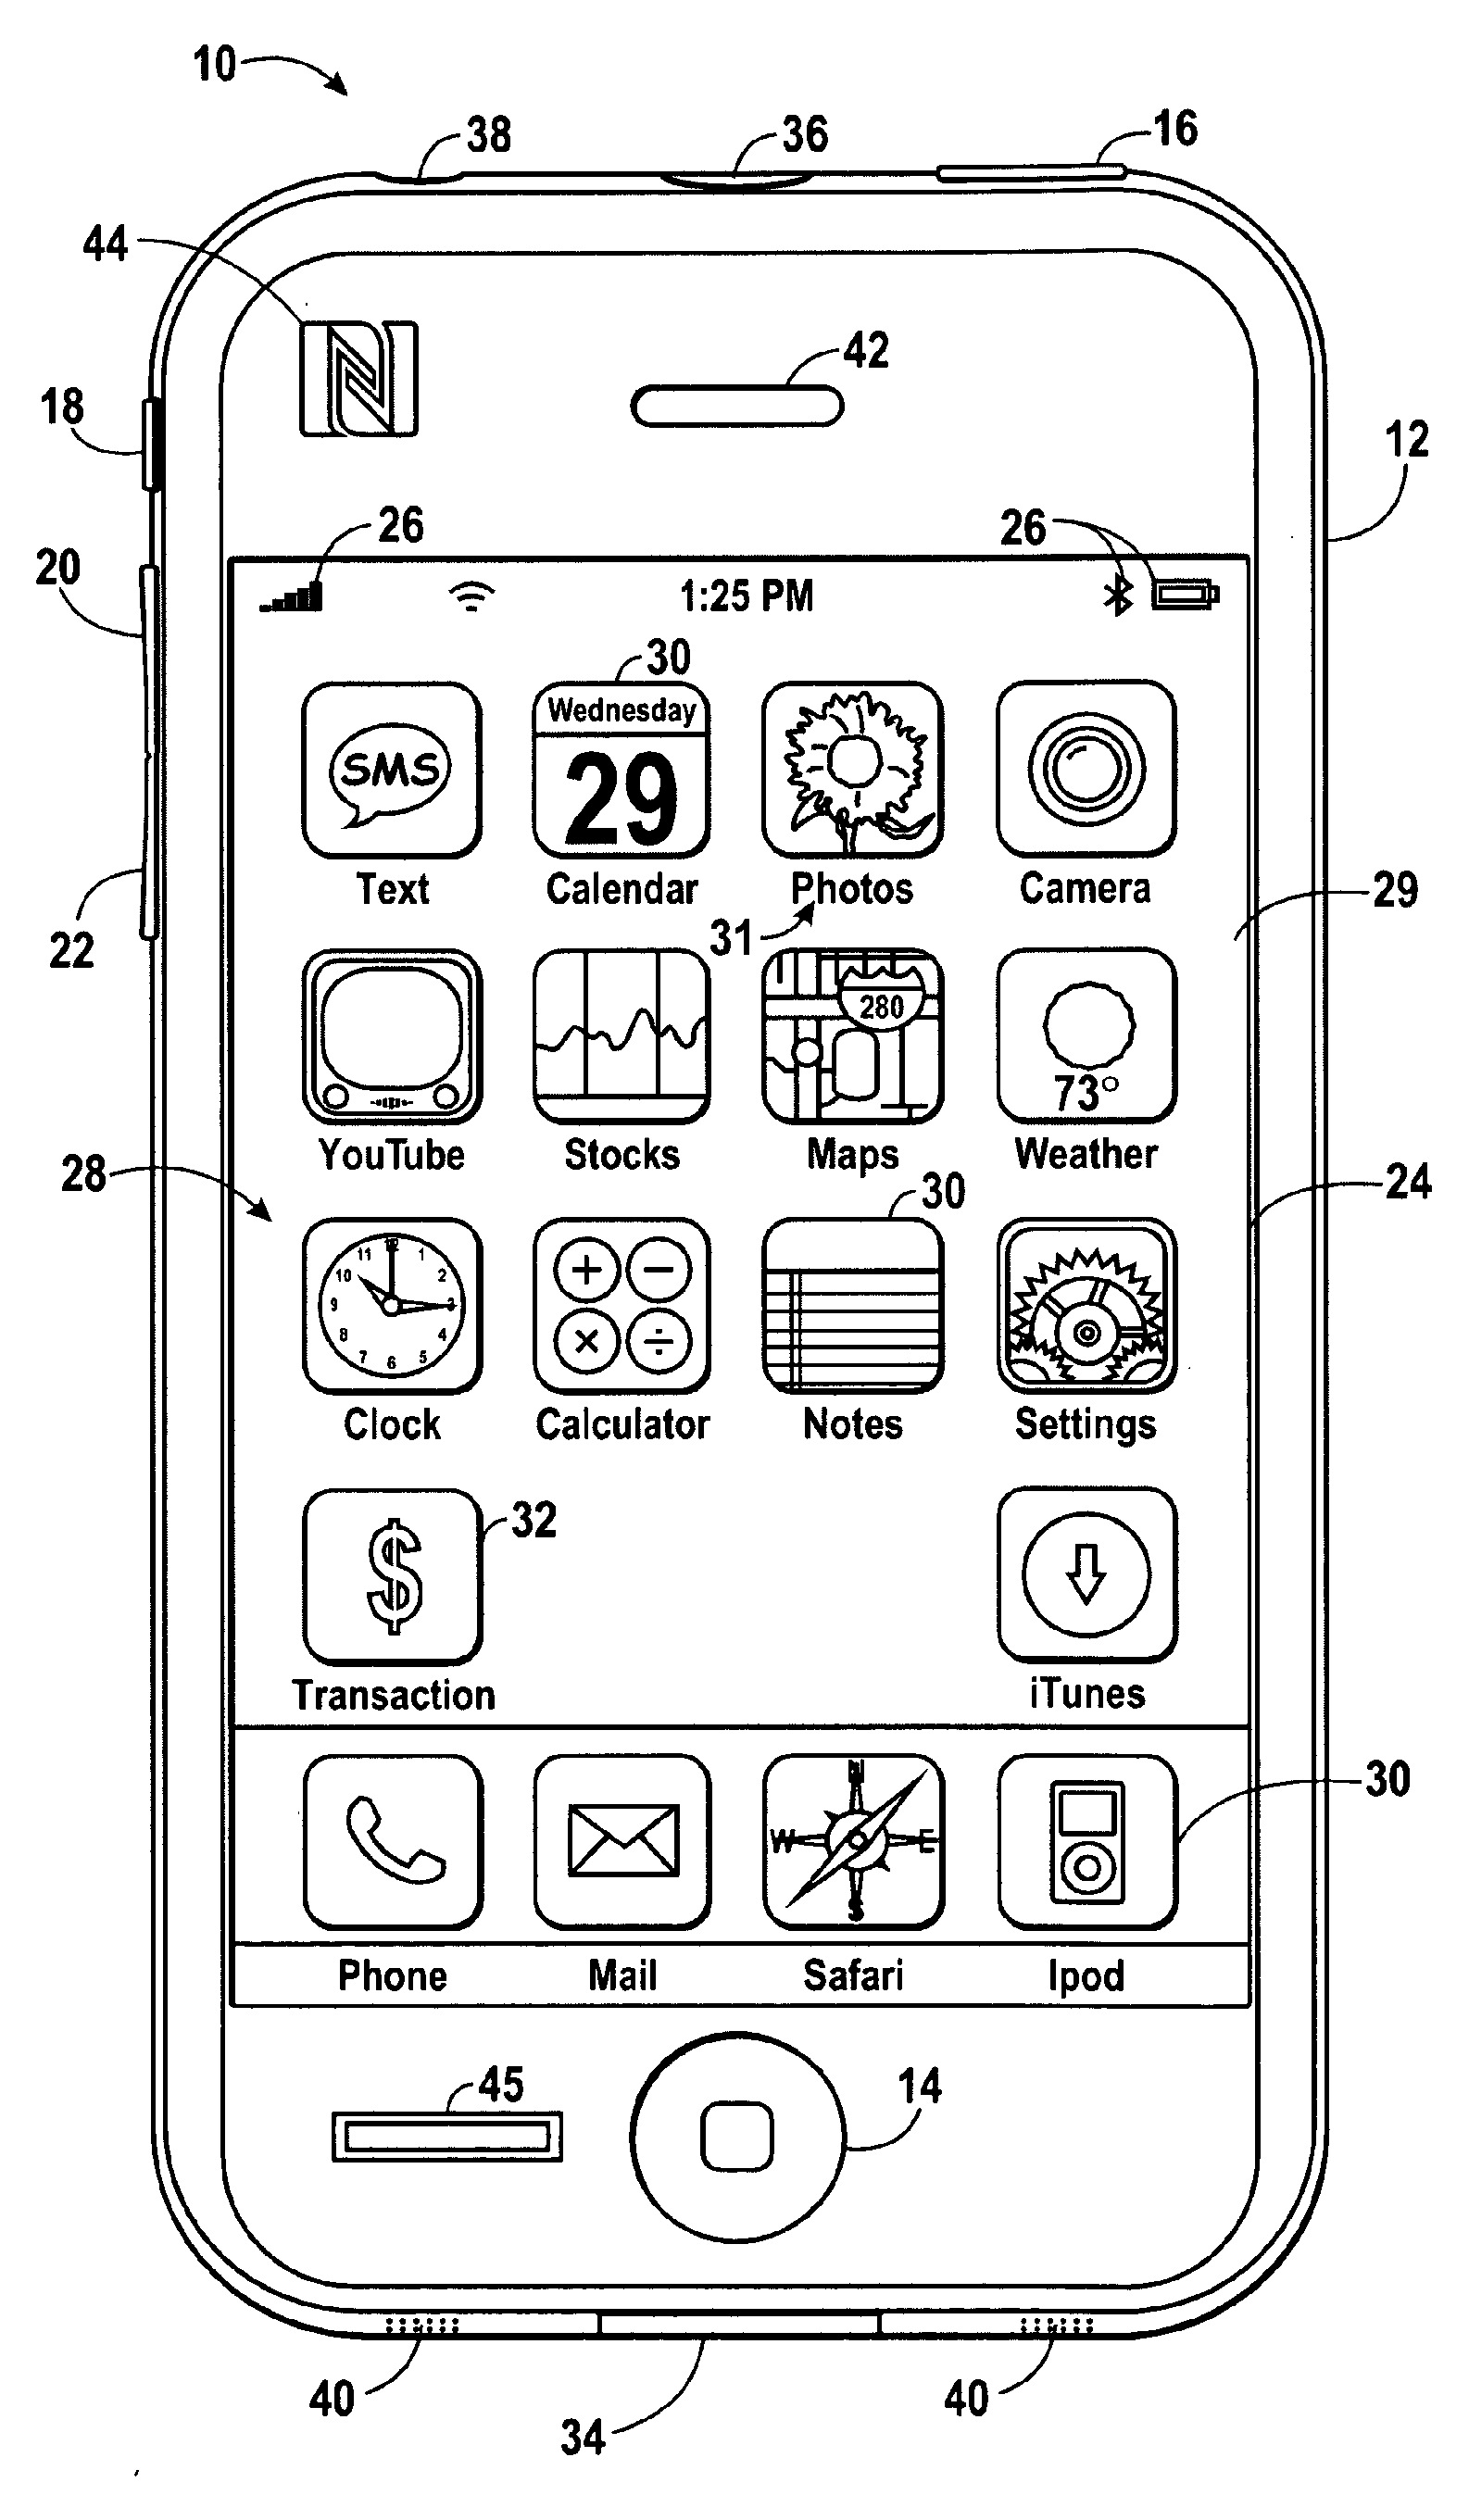 Apple iWallet patent (Transactions icon)